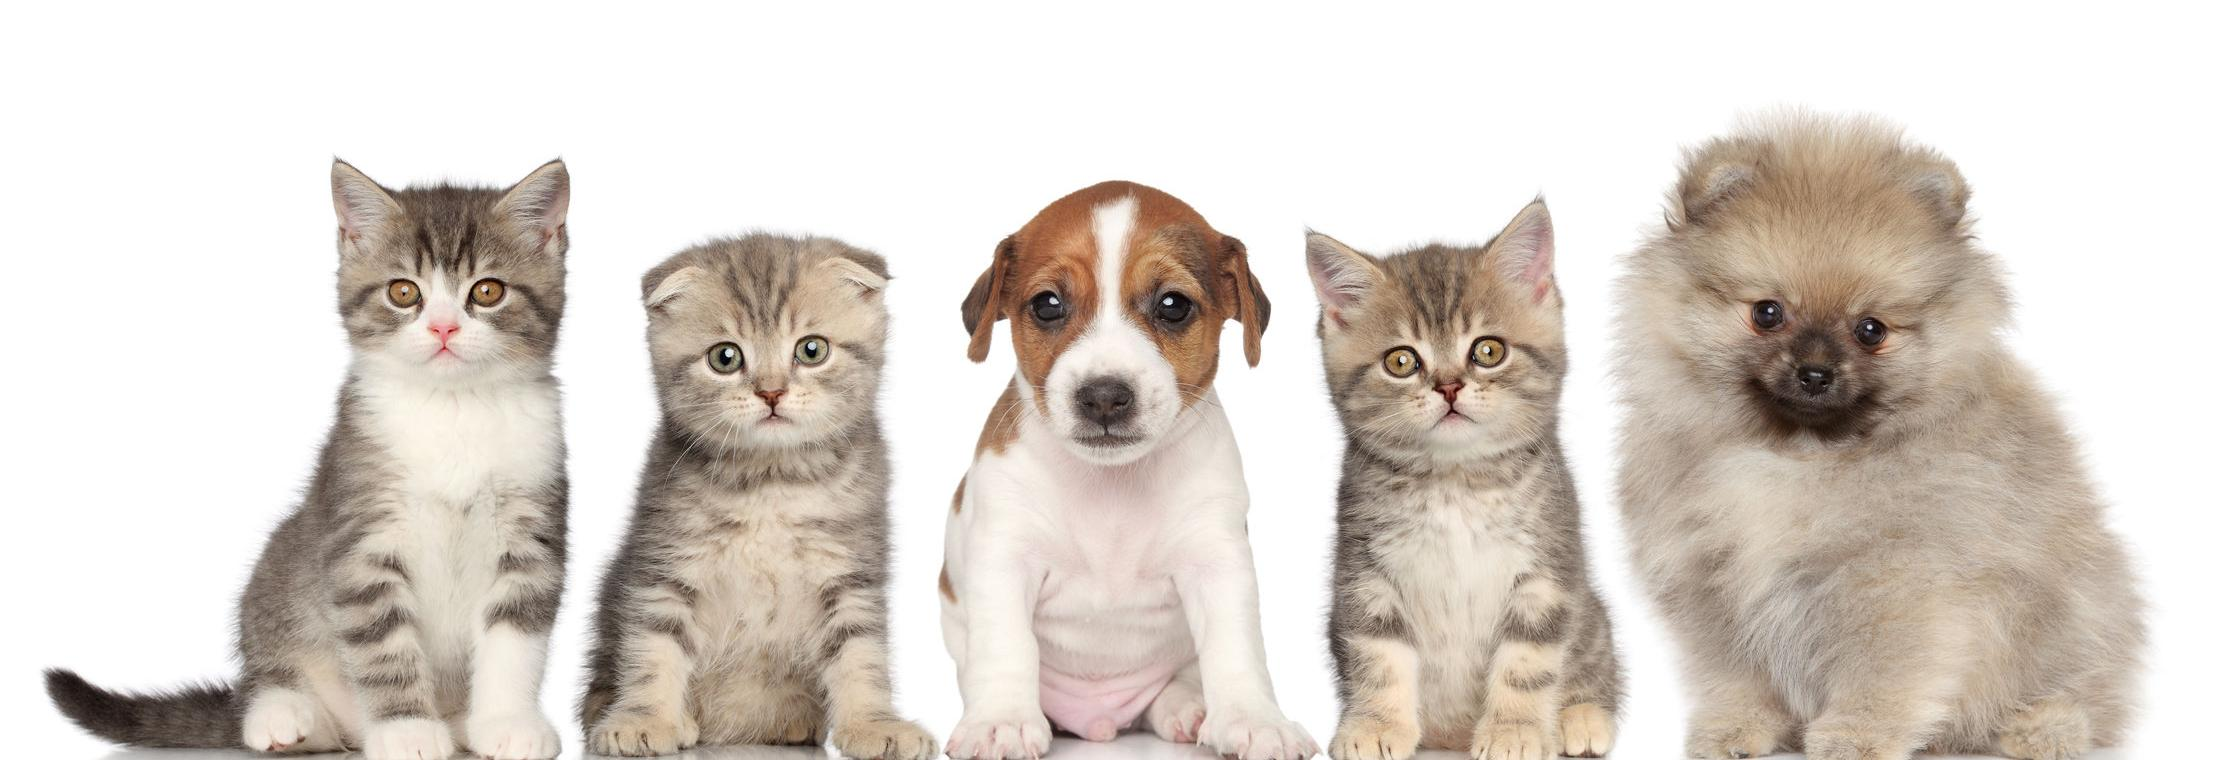 animal hospital, veterinary, surgical, diagnostic, pets, cats, dogs